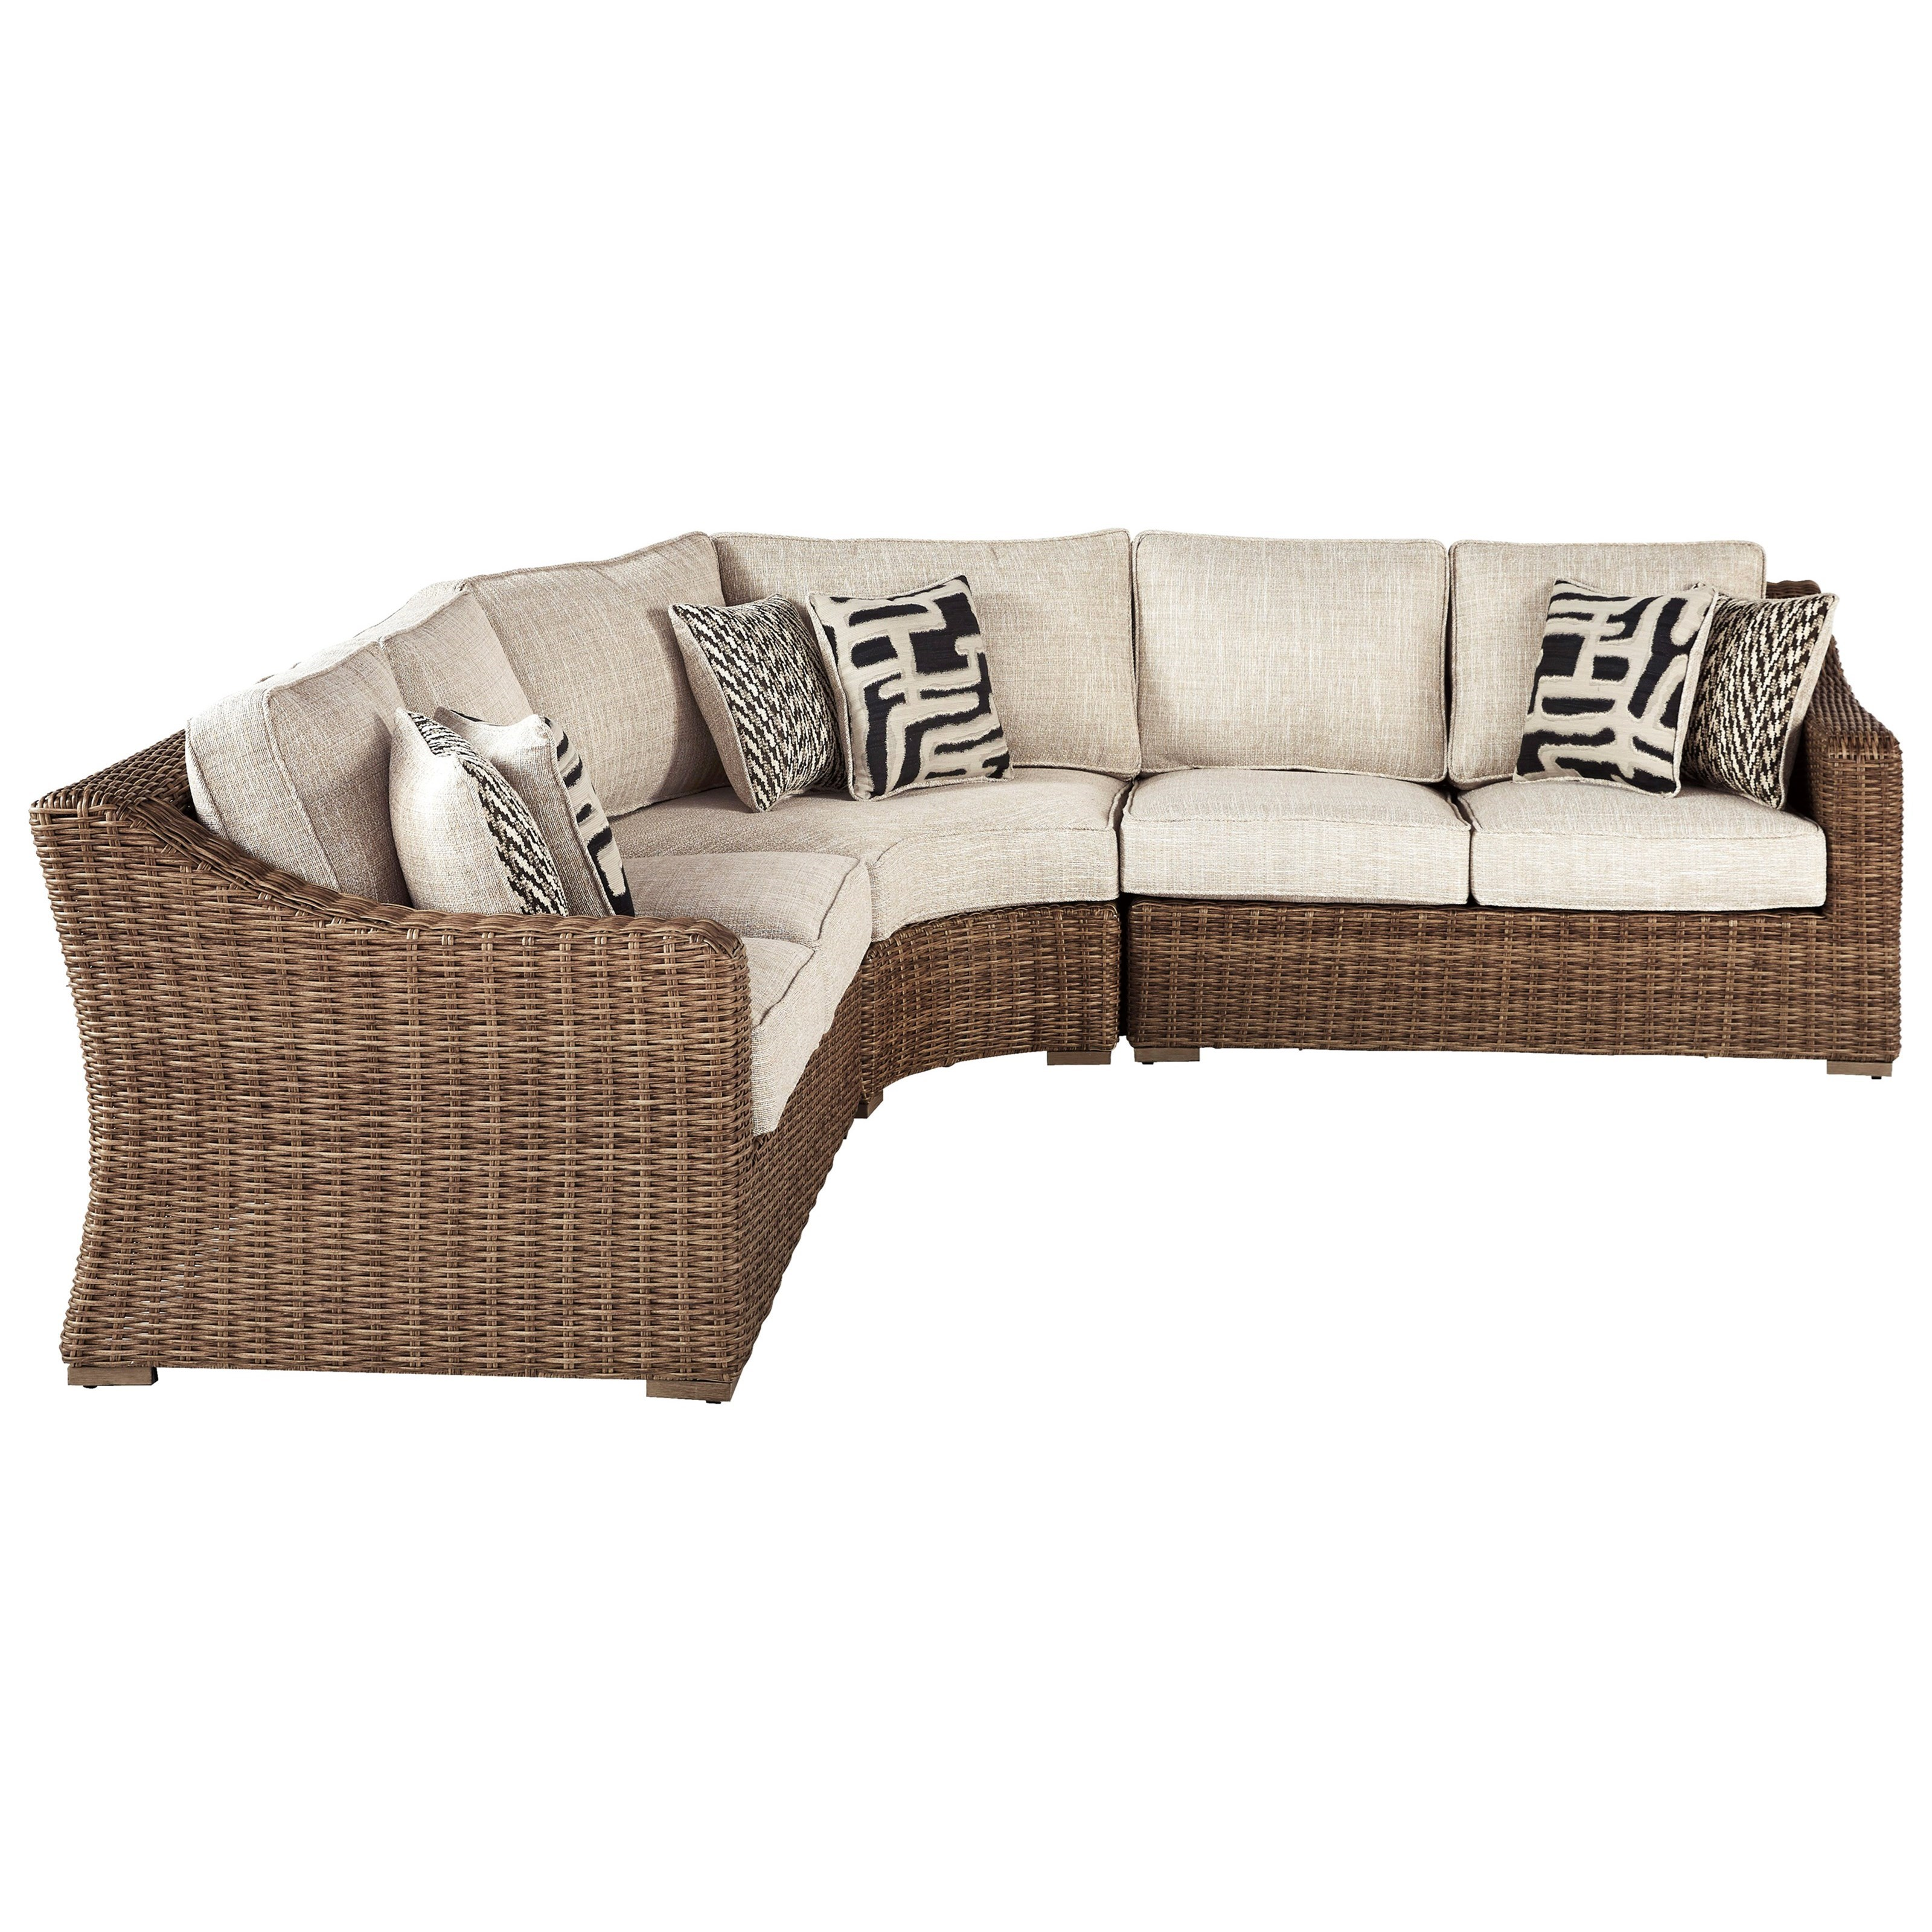 Beachcroft 3 Piece Sectional by Signature Design by Ashley at Northeast Factory Direct